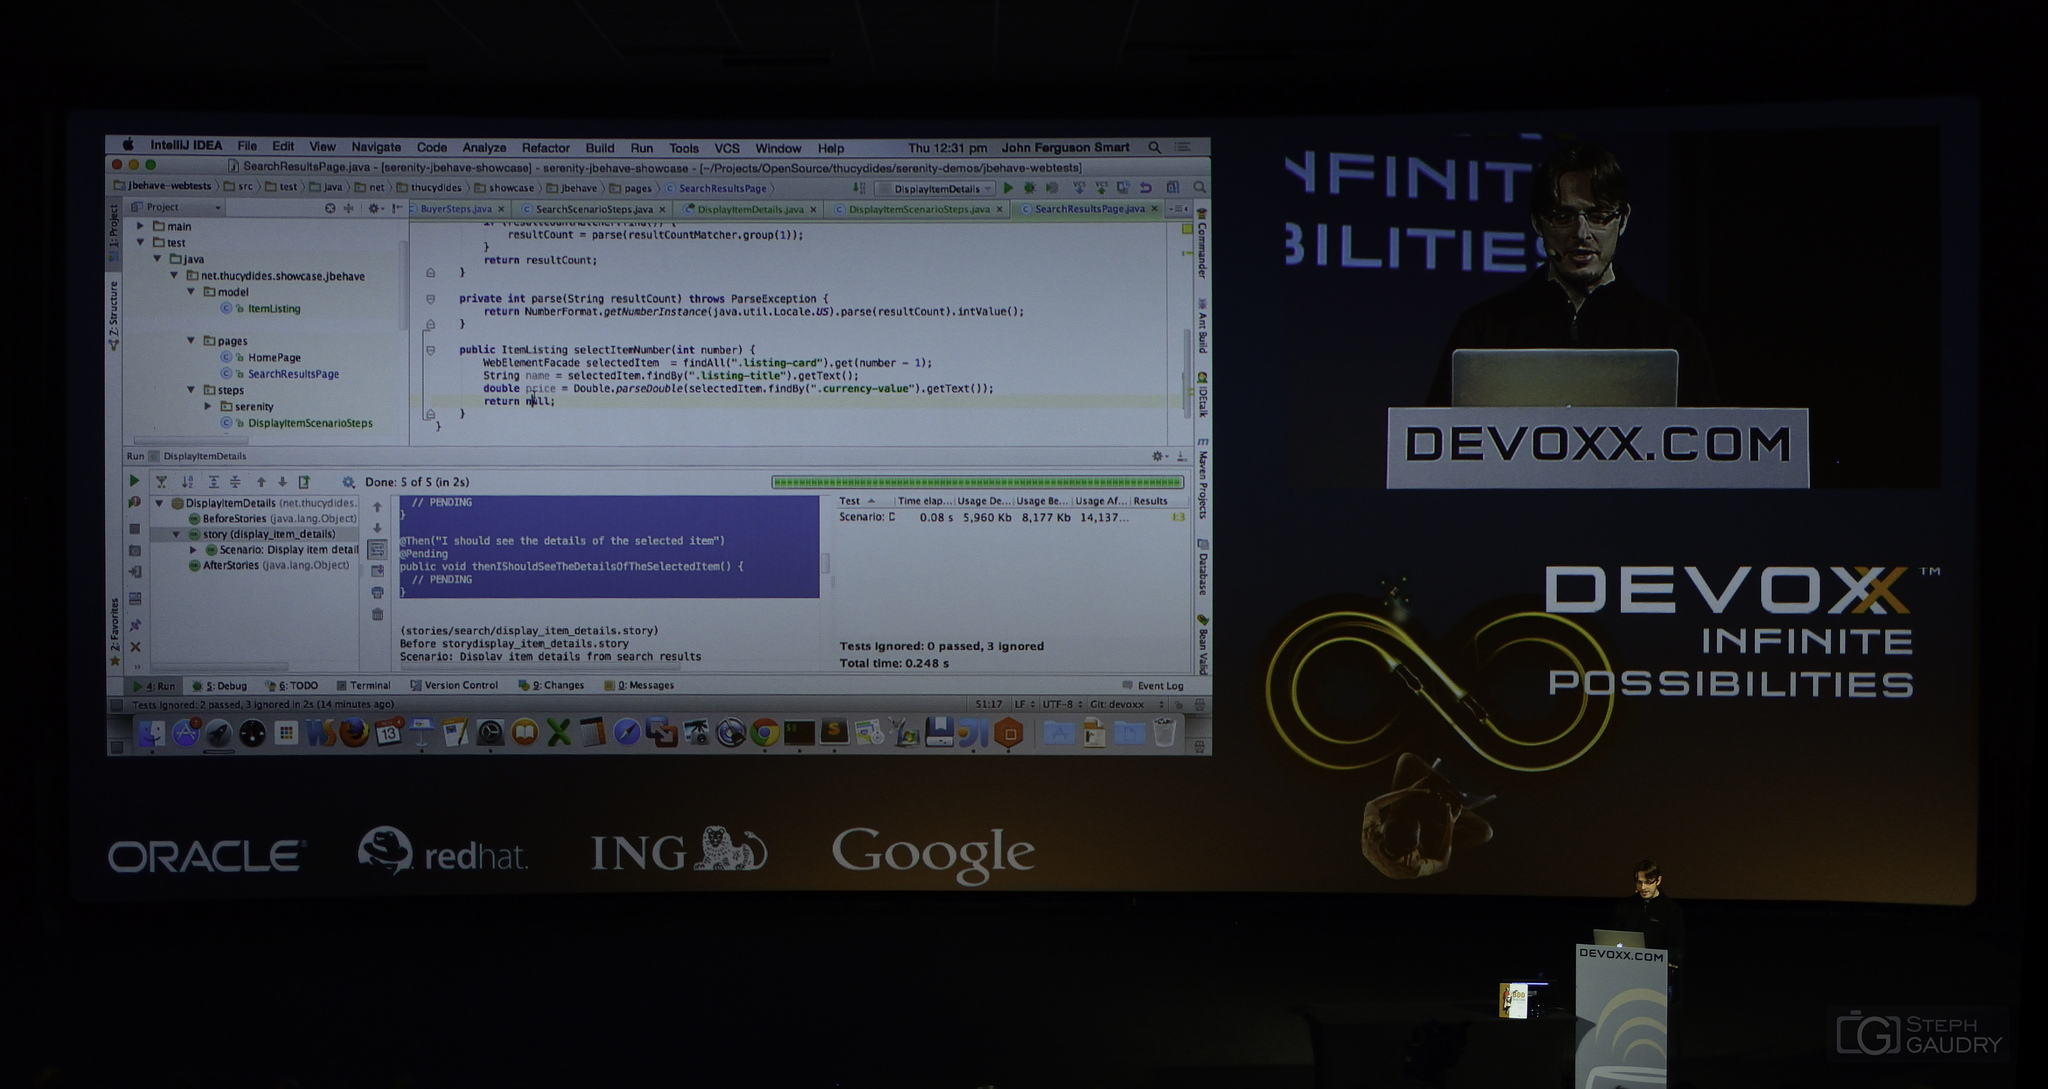 Devoxx 2014 - Thucydides is dead, long live Serenity